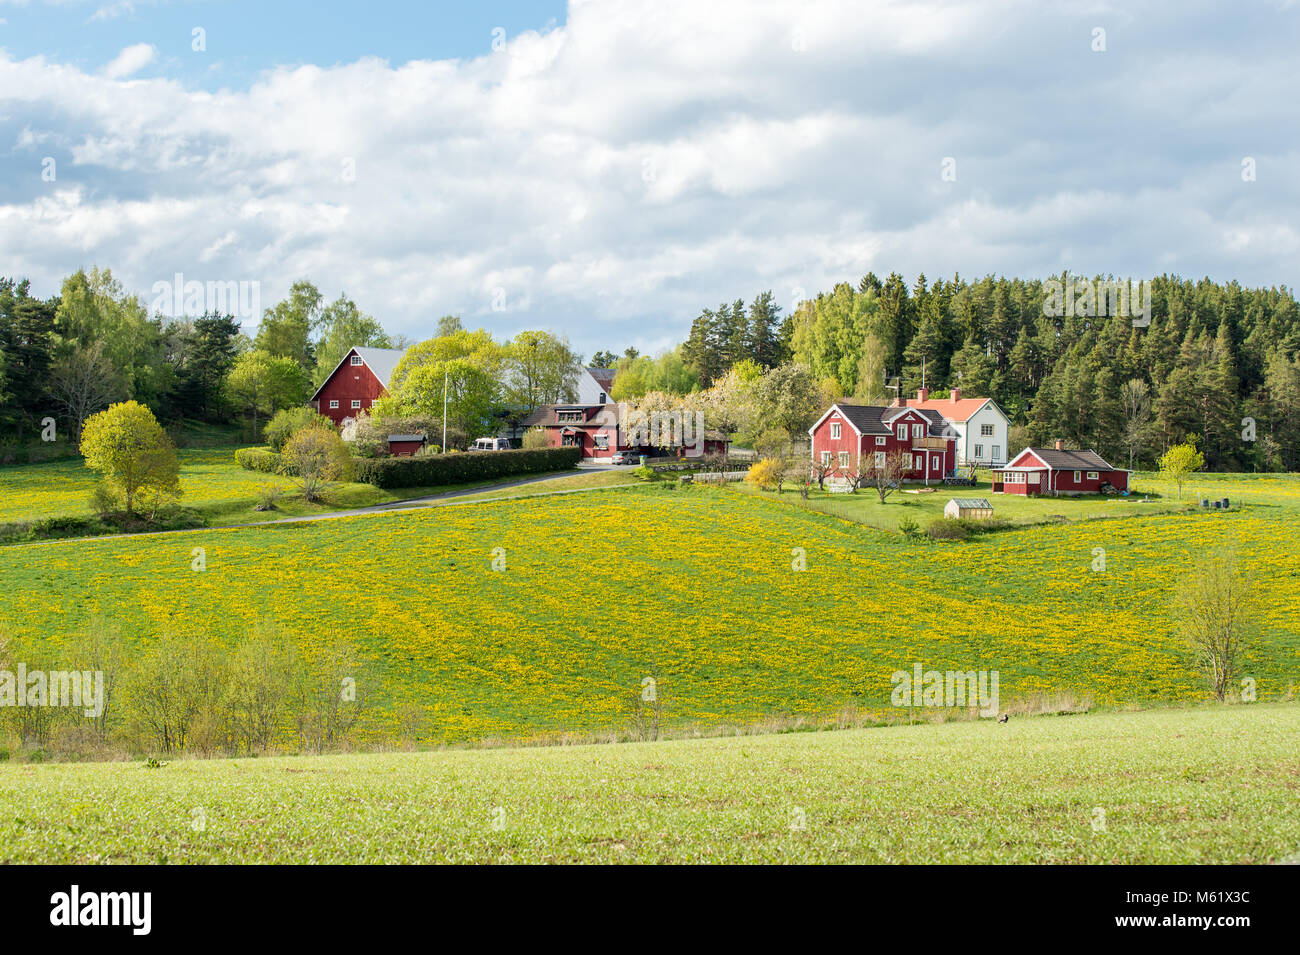 Spring in the countryside of Småland, Sweden - Stock Image